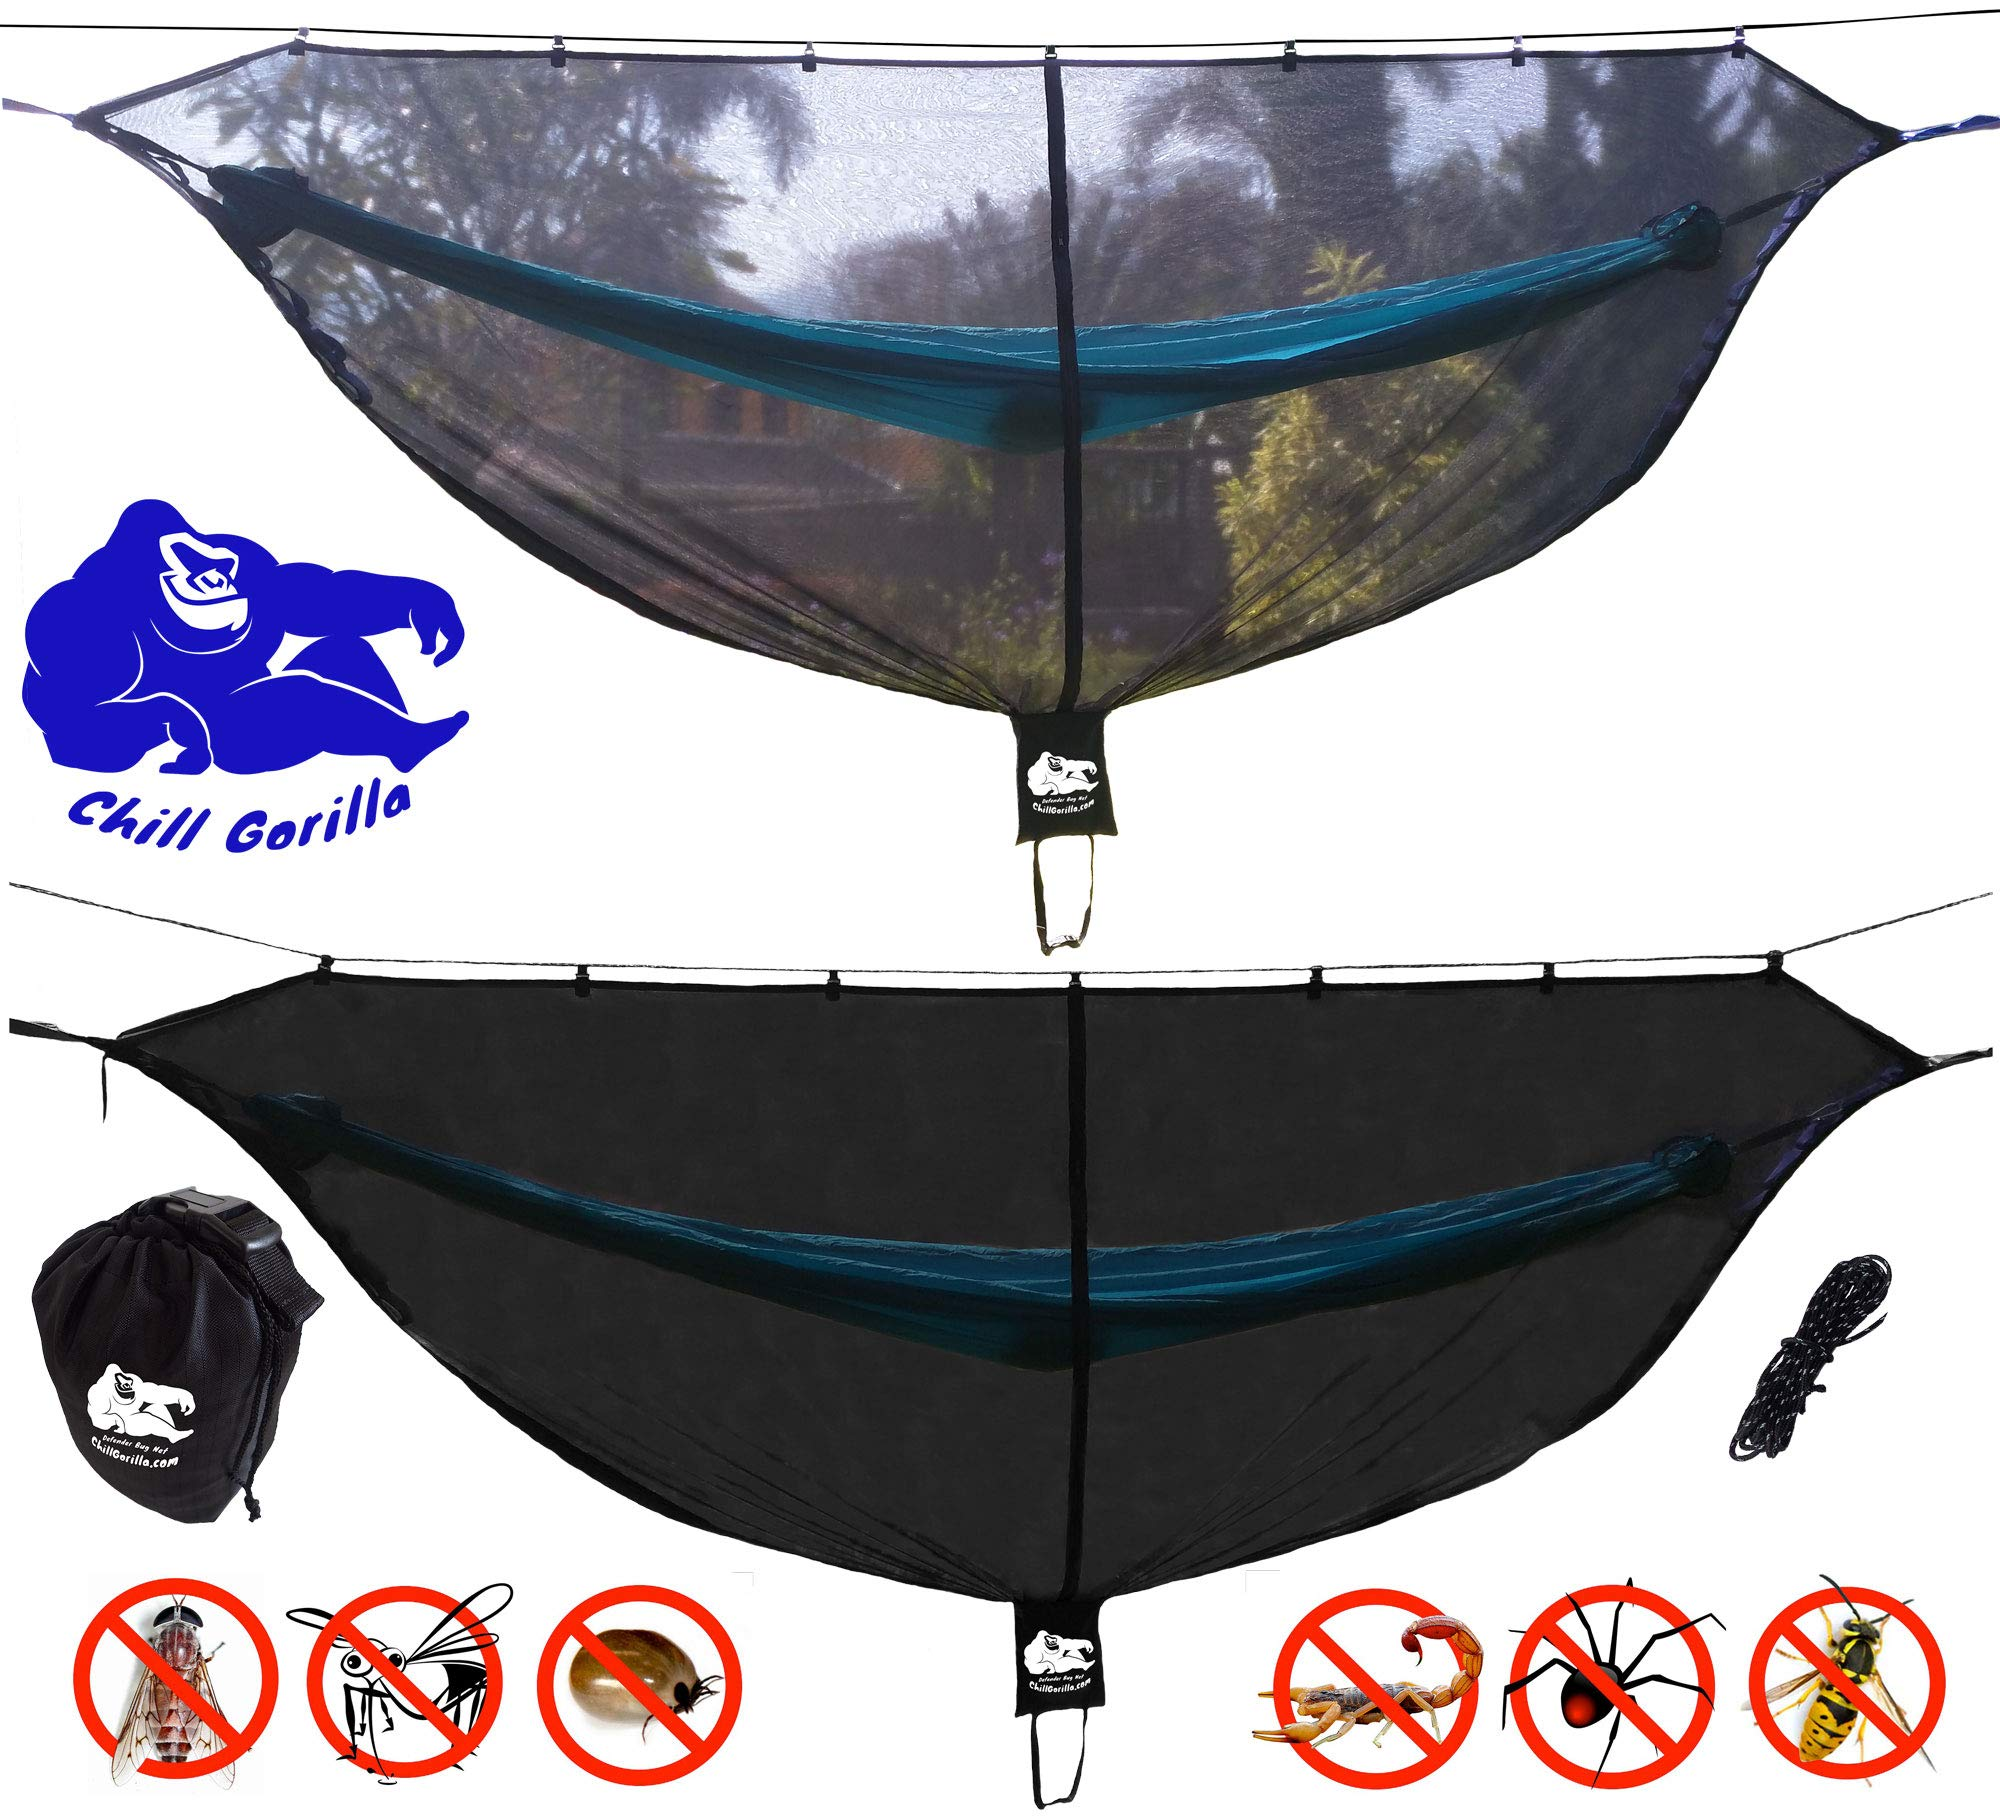 Chill Gorilla Defender Hammock Mosquito Net Stops All Bugs & Insects. Fast Easy Setup. Compact, Lightweight. Size 132'' x 51''. Camping Accessories. by Chill Gorilla